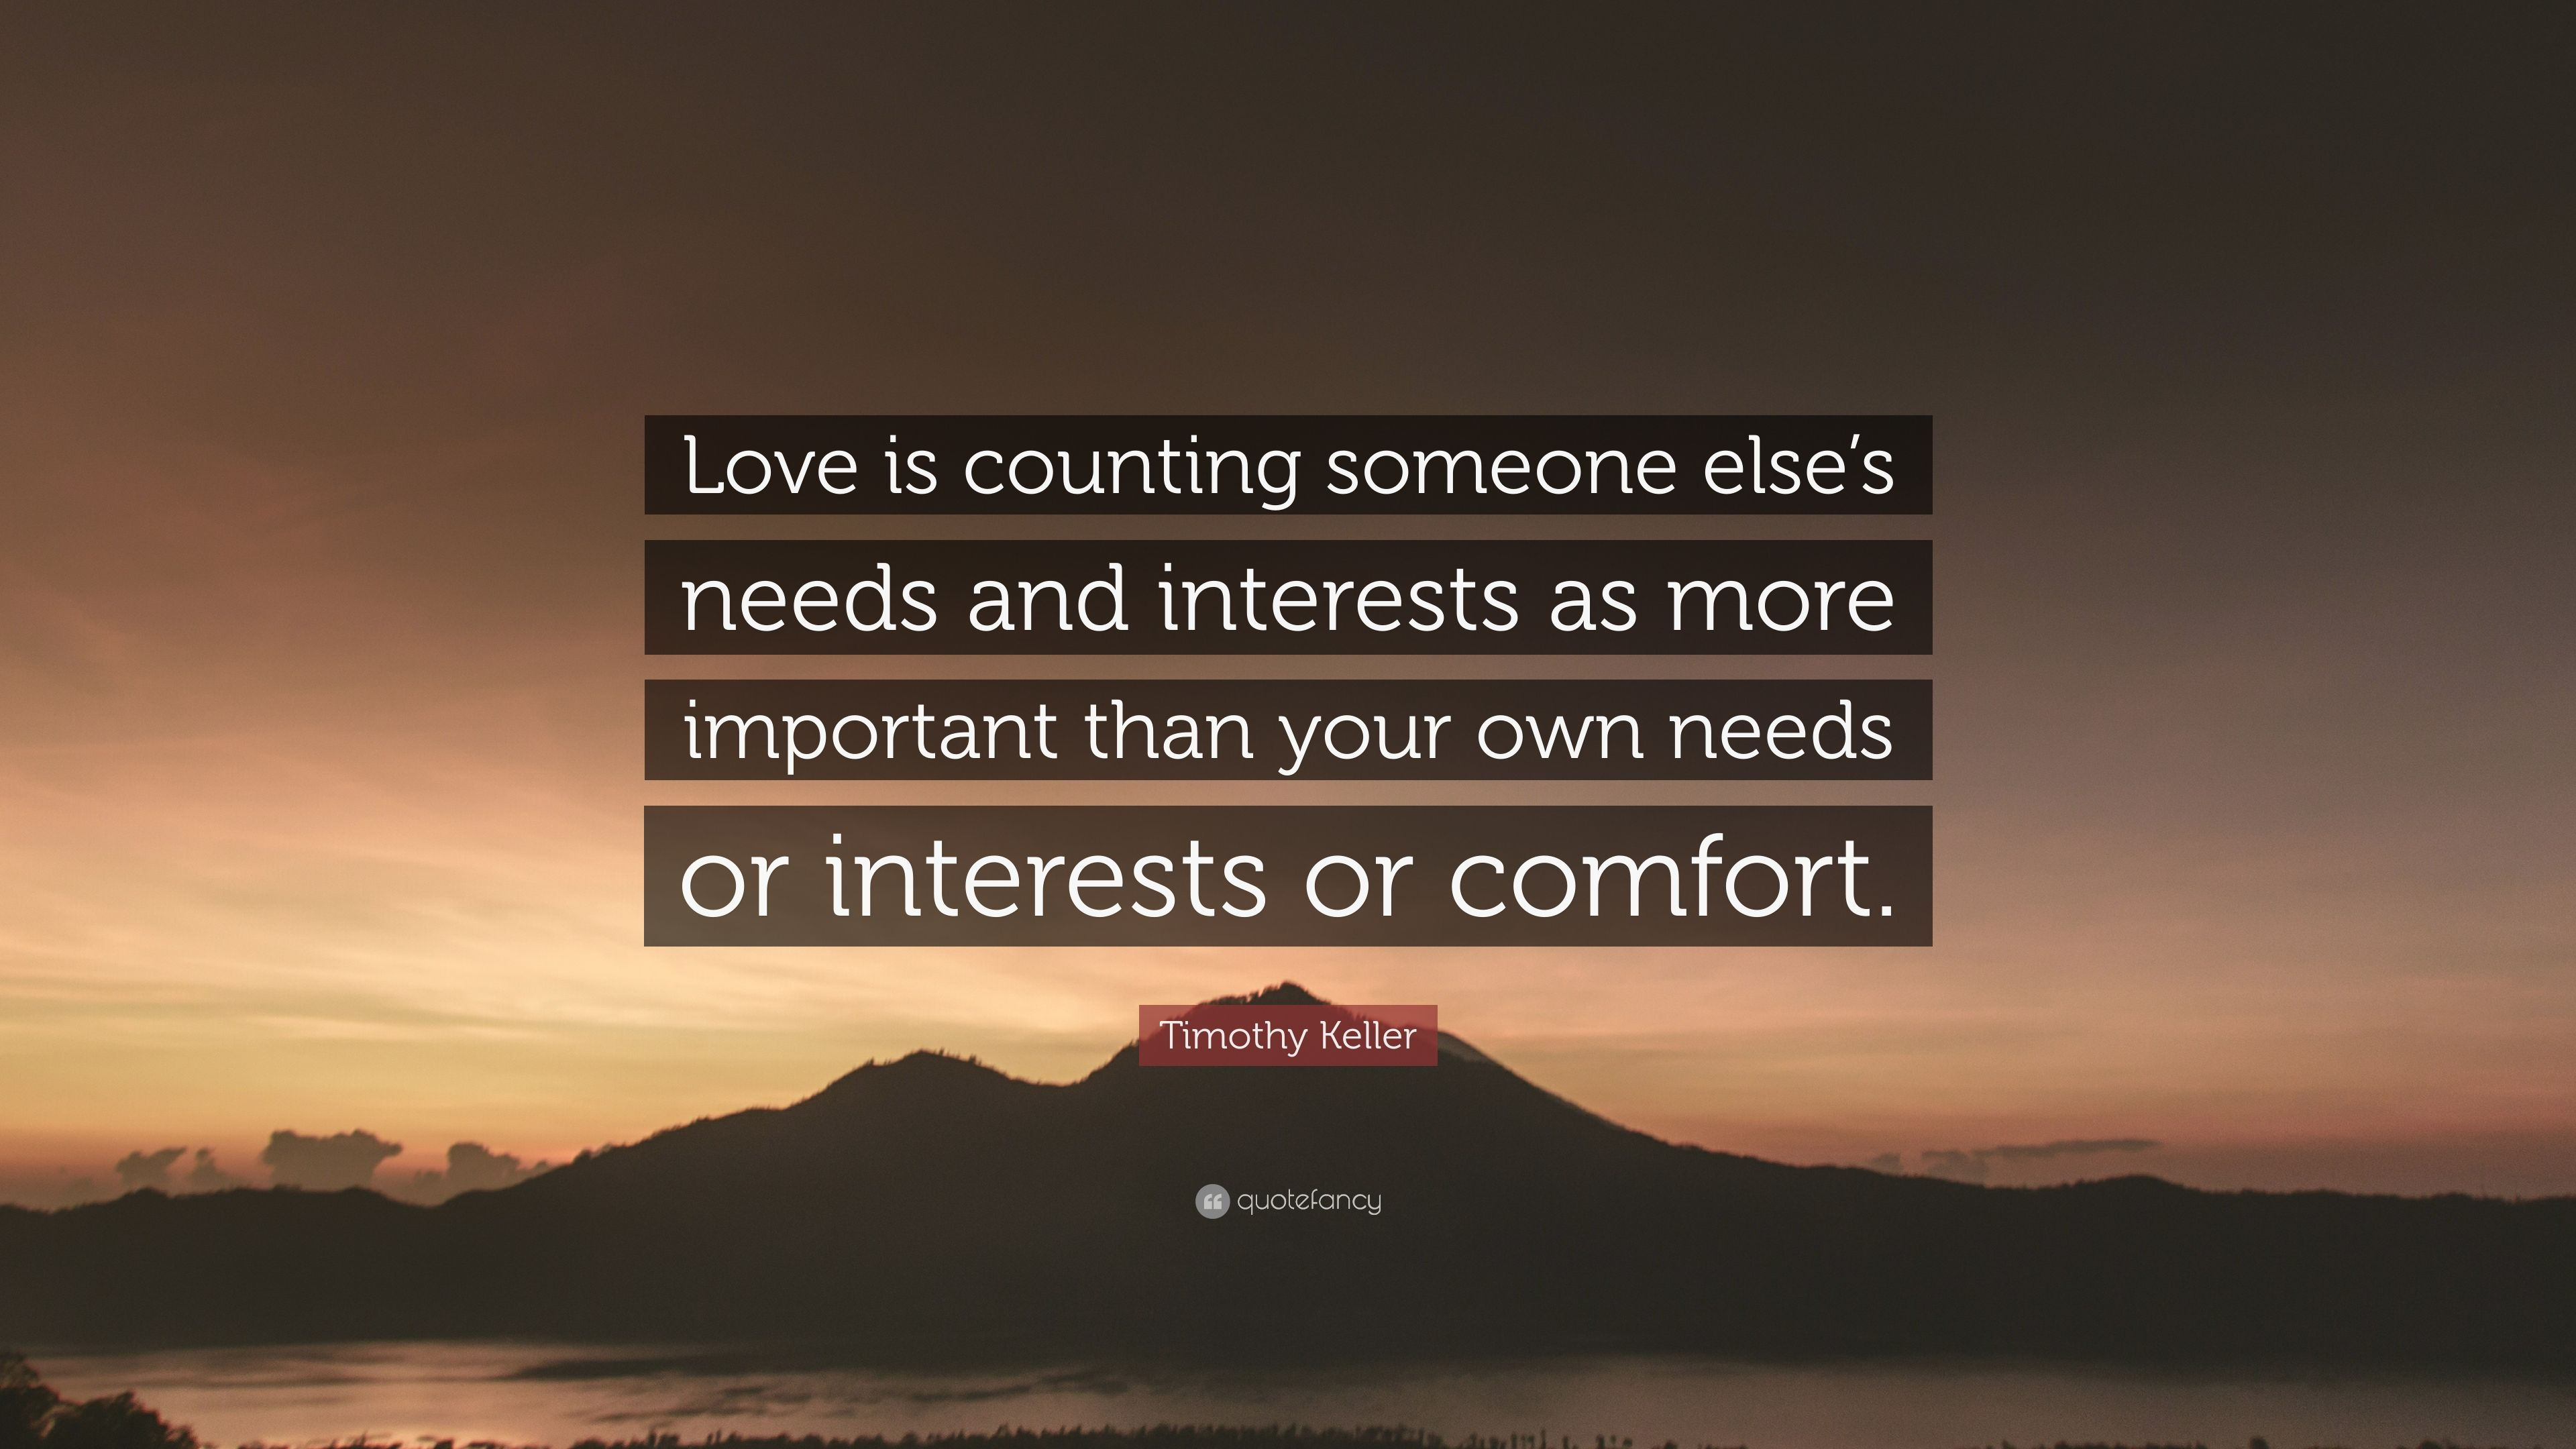 Why is love more important? 34